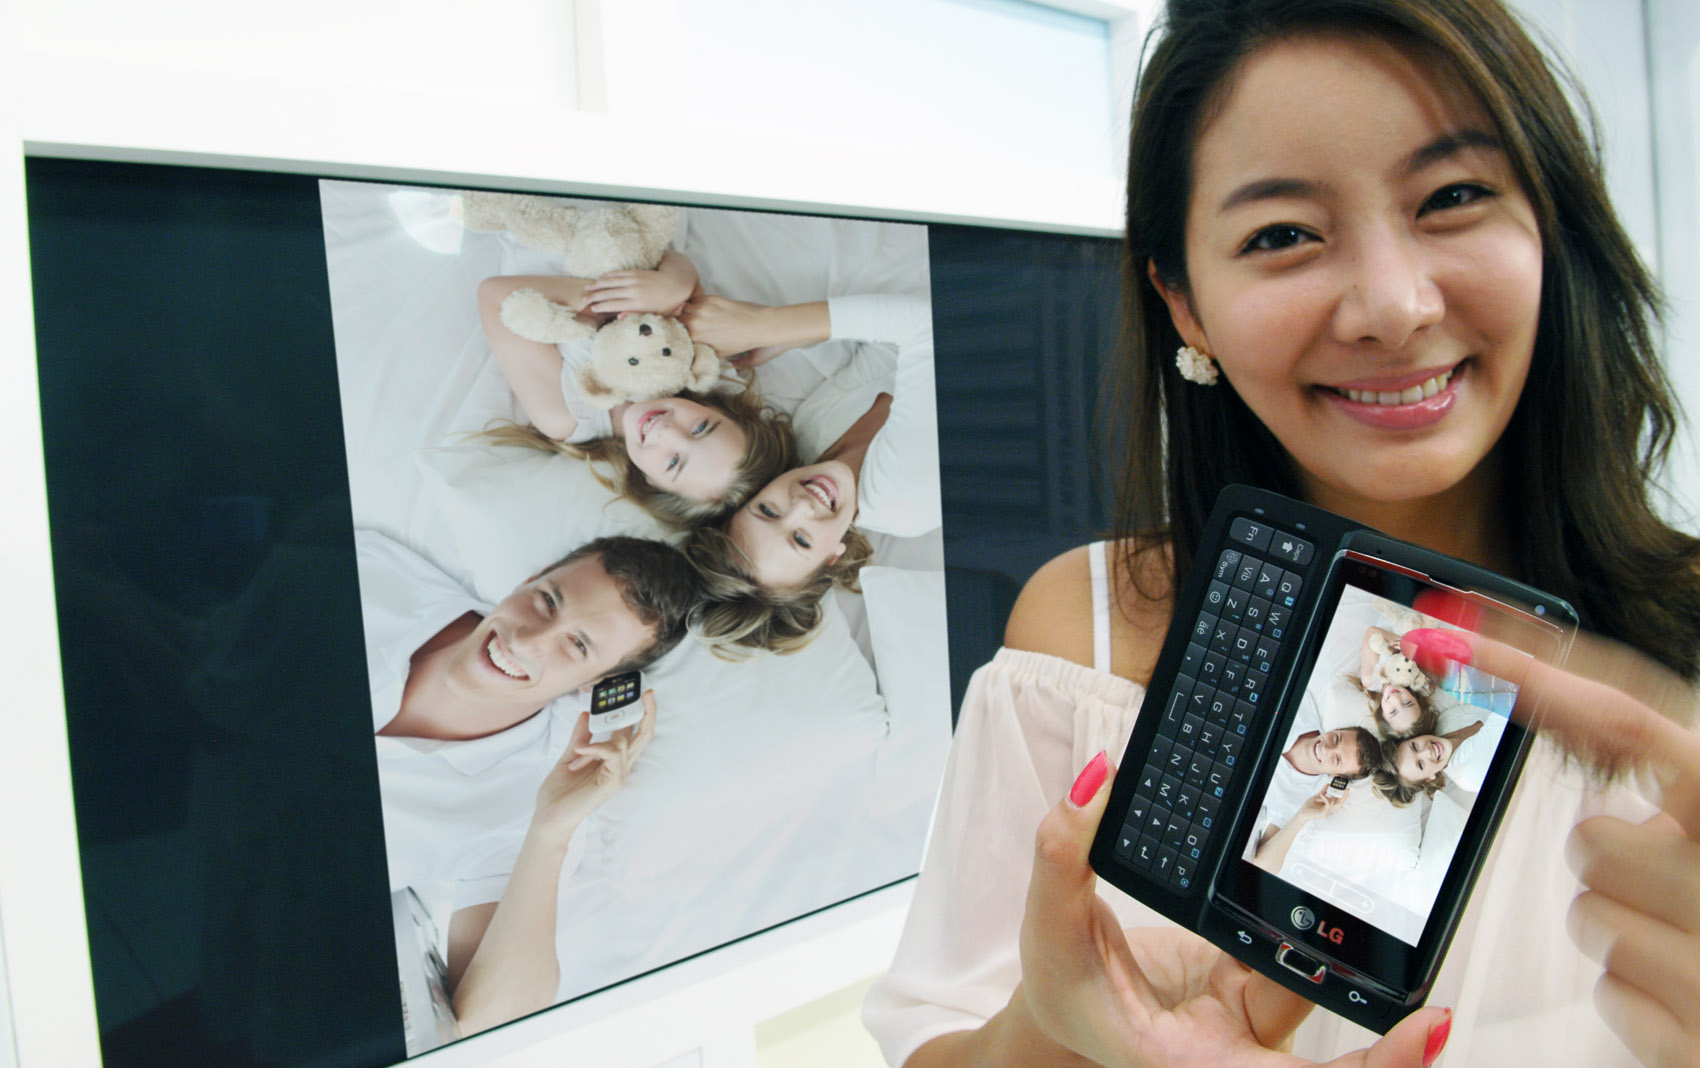 A female model is showing a family photograph on the TV by using LG's unique multimedia sharing technology on her LG Optimus 7.